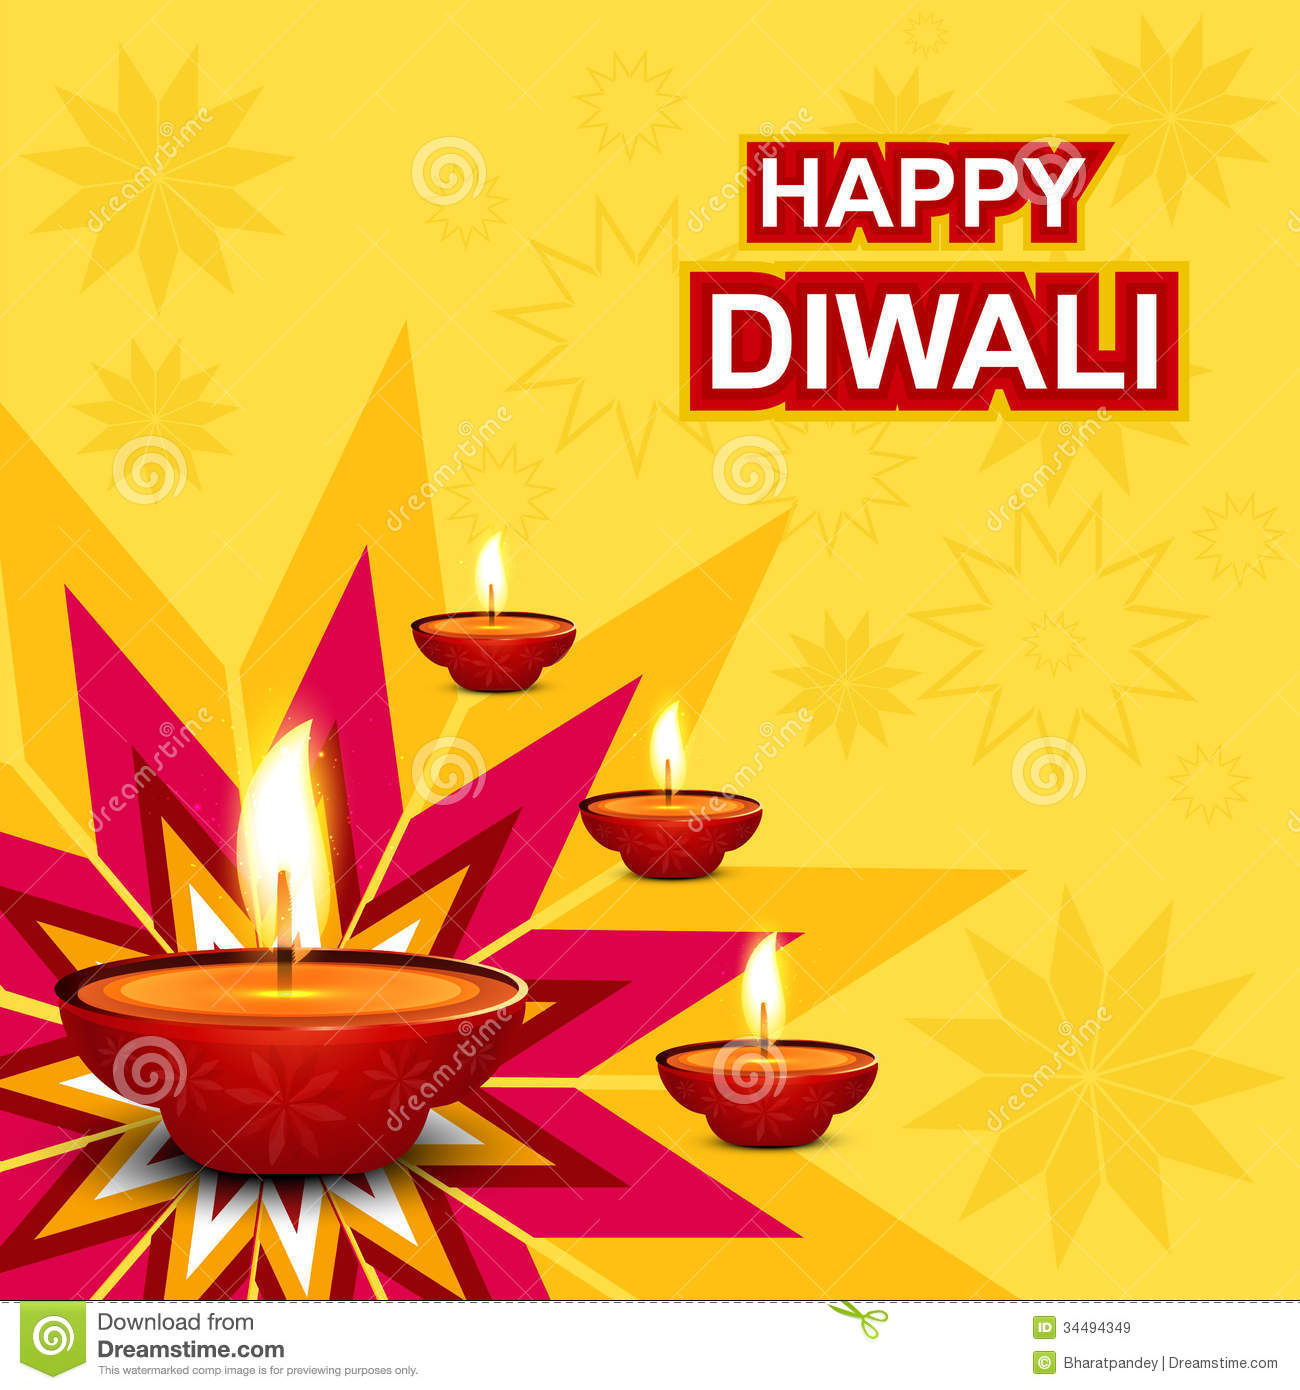 Beautiful diwali greeting card stock illustration illustration beautiful diwali greeting card kristyandbryce Image collections